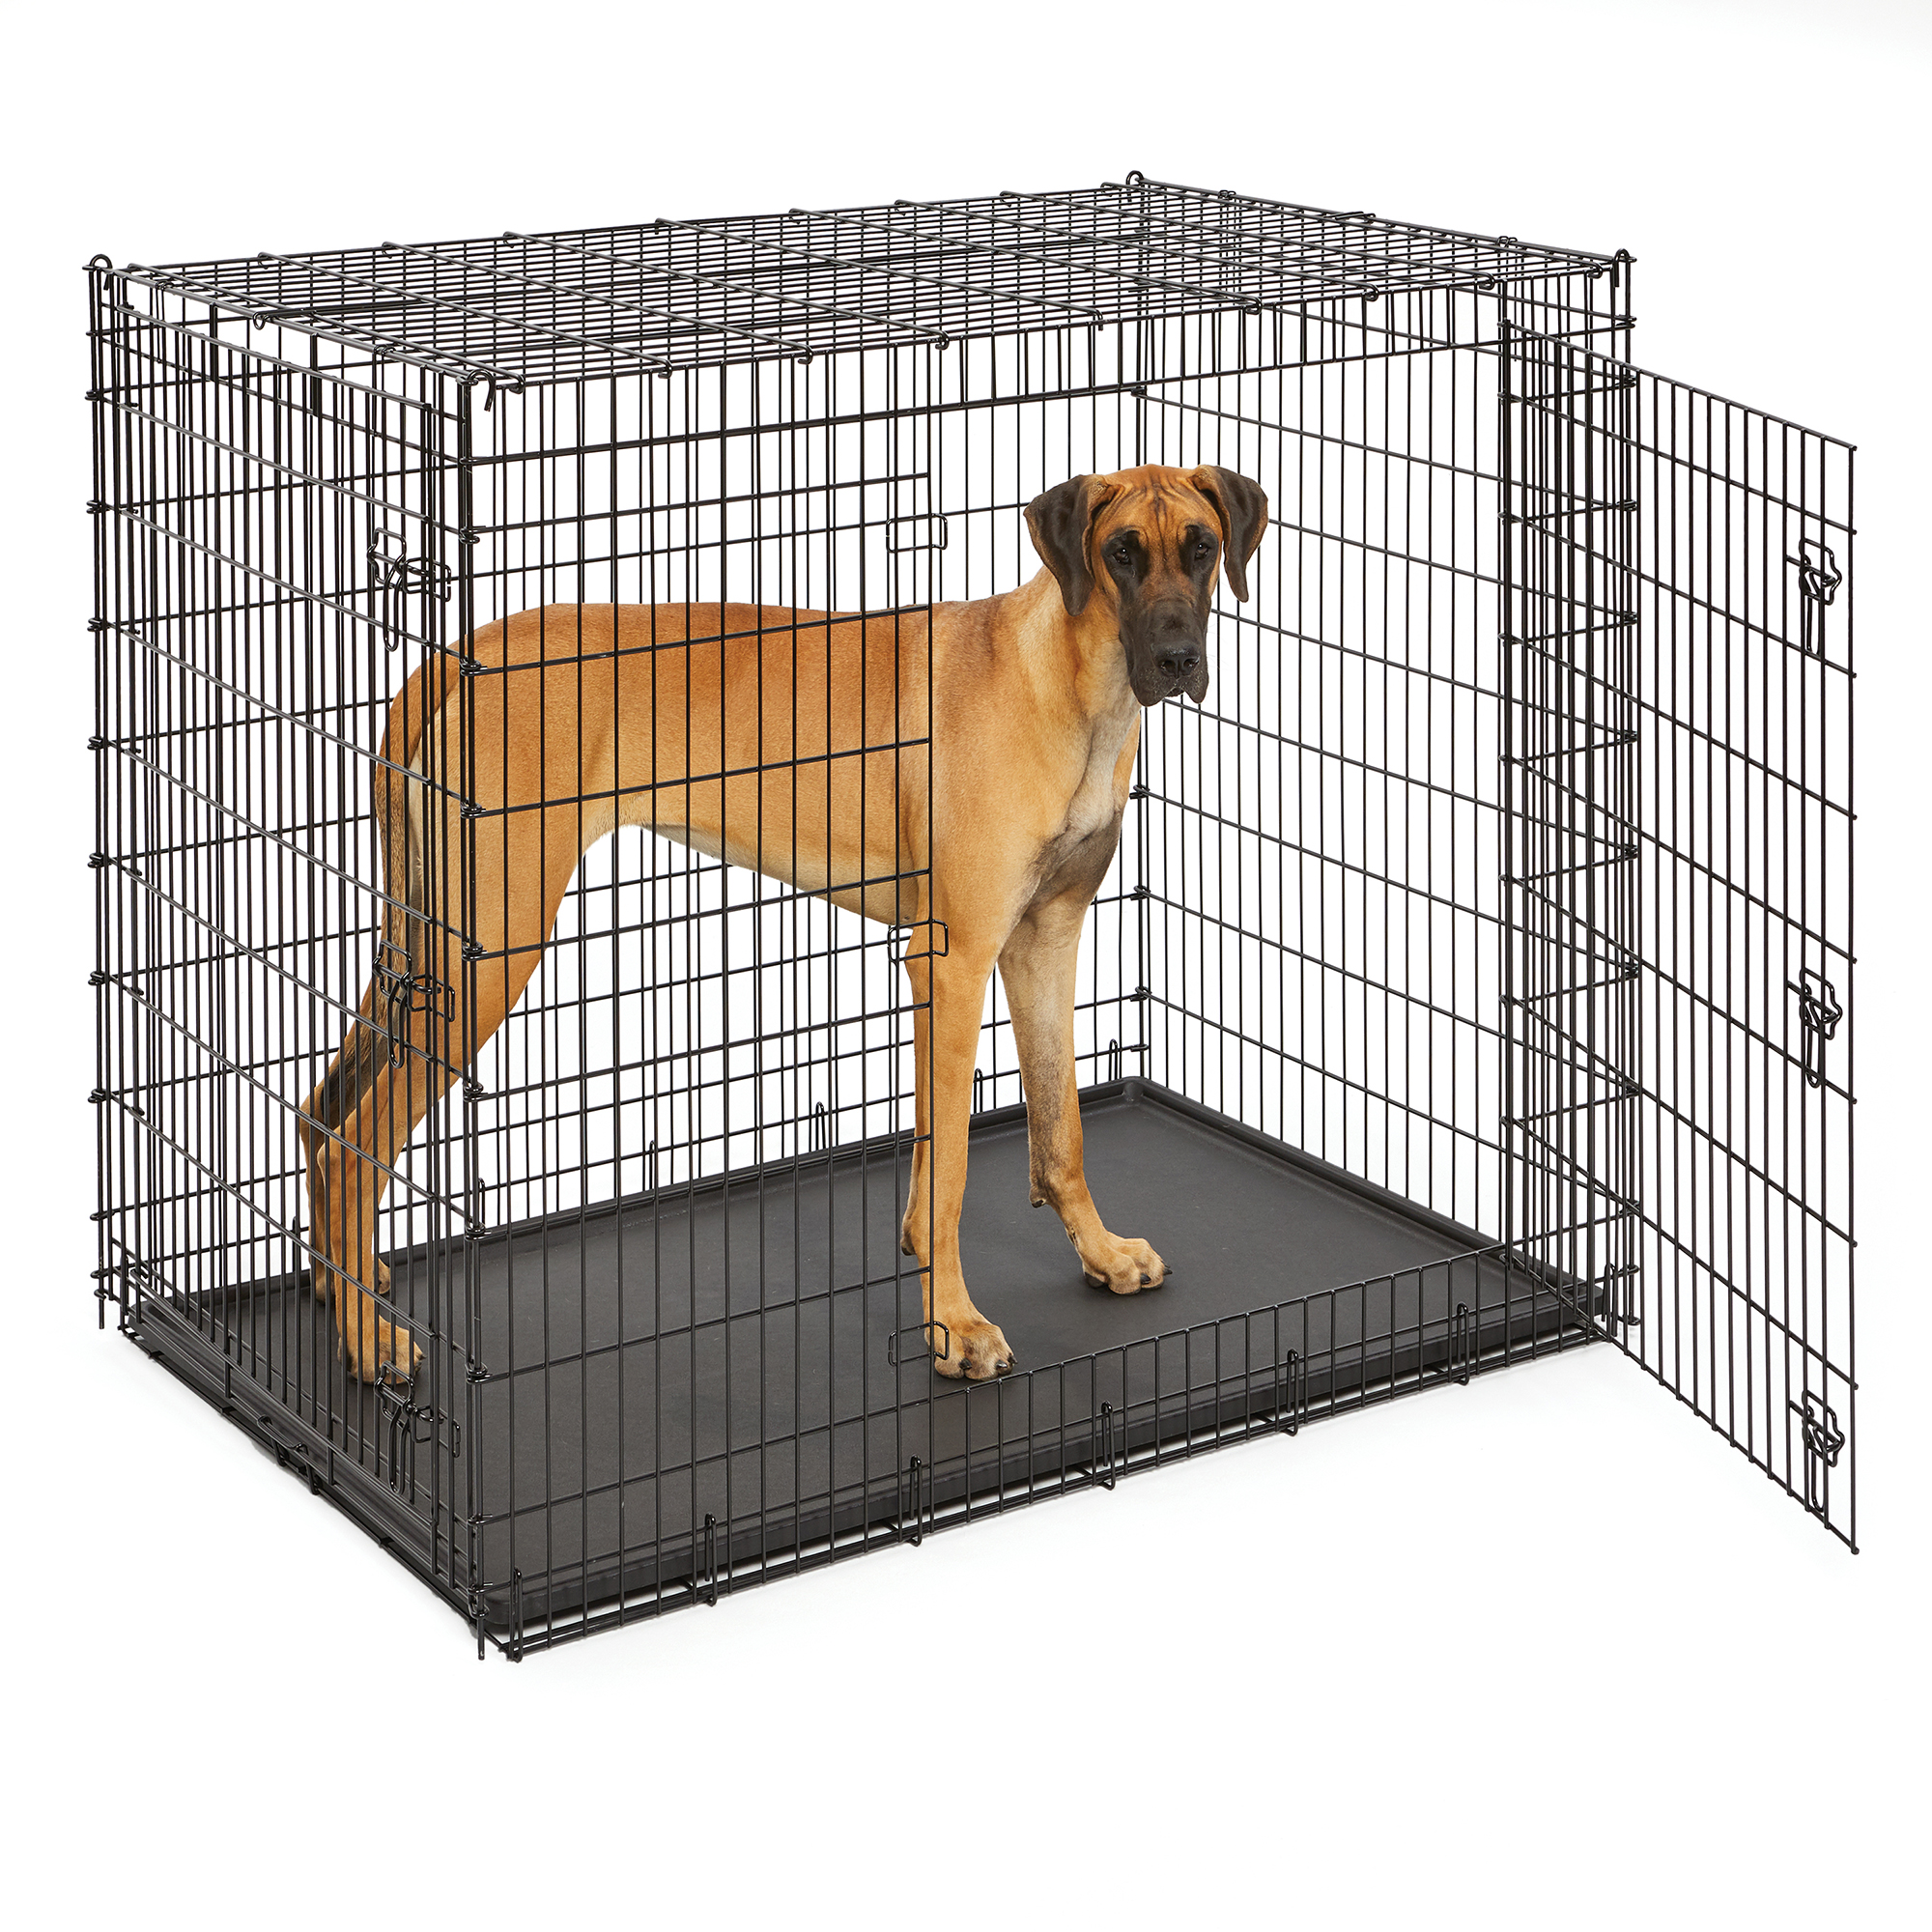 MidWest Extra Large Dog Breed (Great Dane) Heavy Duty Metal Dog Crate w/ Leak-Proof Pan, Double Door Giant Dog Crate